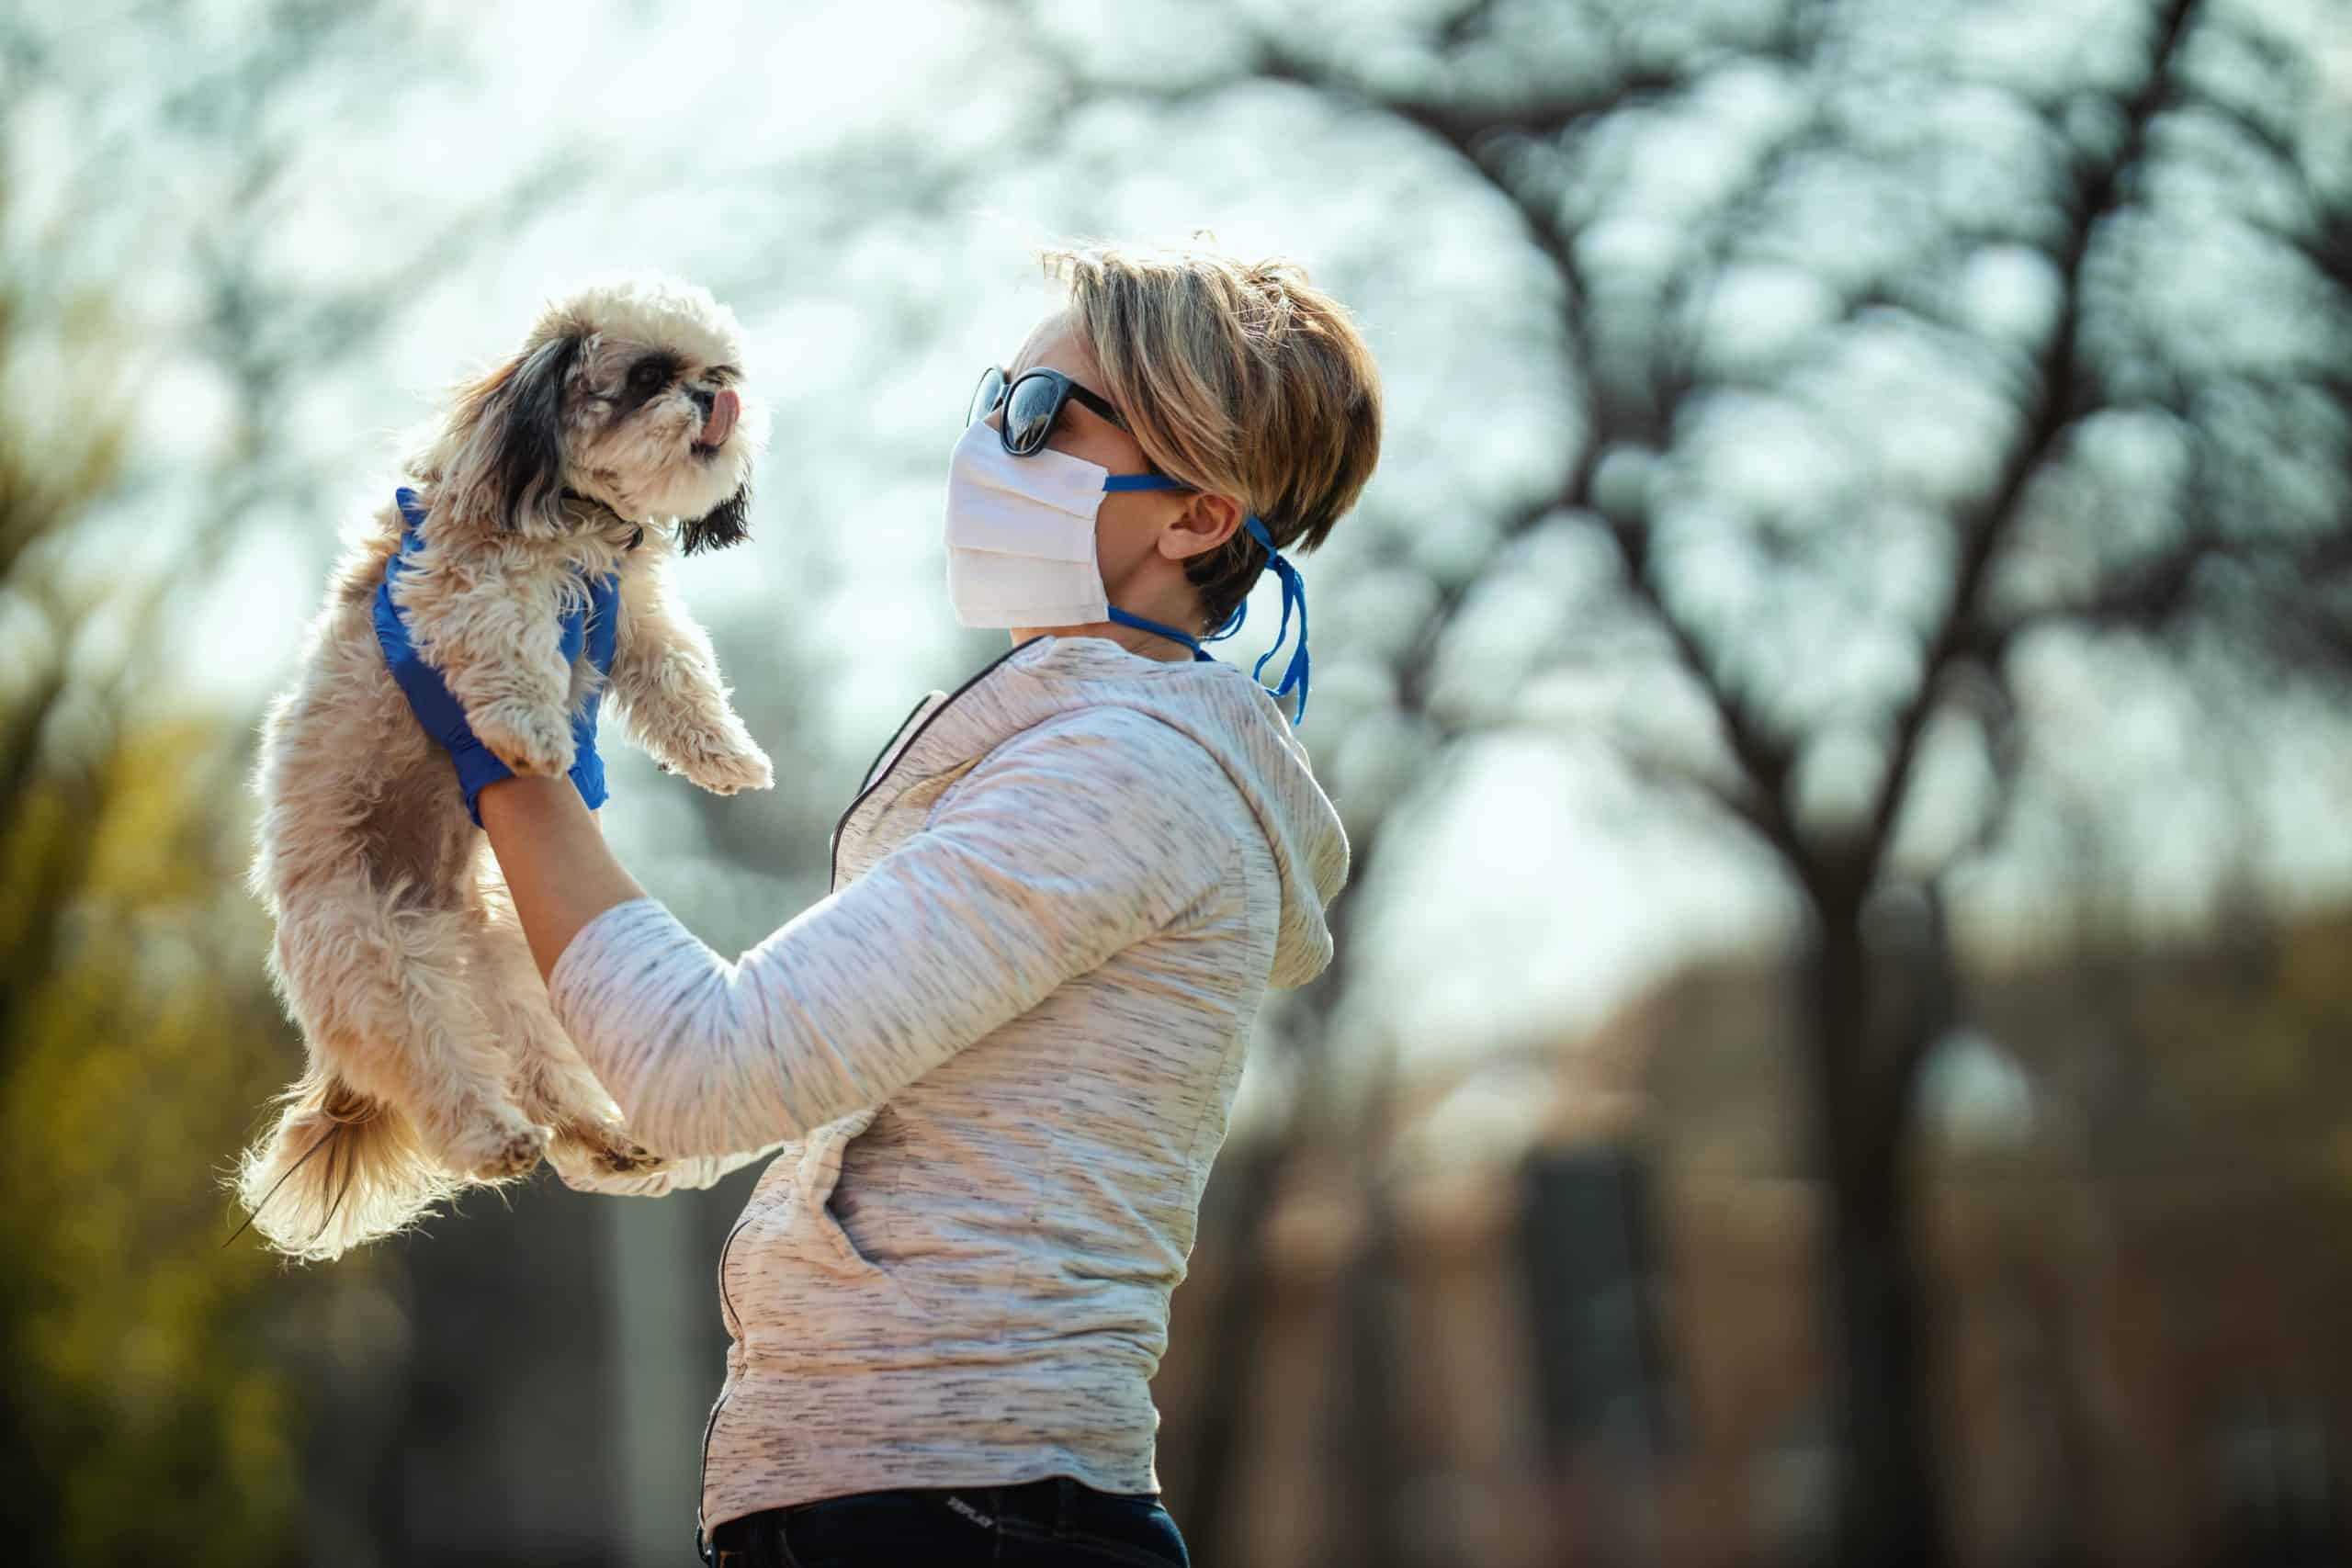 Woman wears a mask and gloves while walking her dog. To protect yourself from COVID-19, remain six feet apart from other people. If you are in an area with other dog walkers, it is advised that you put your dog on a lead to help keep to social distancing.